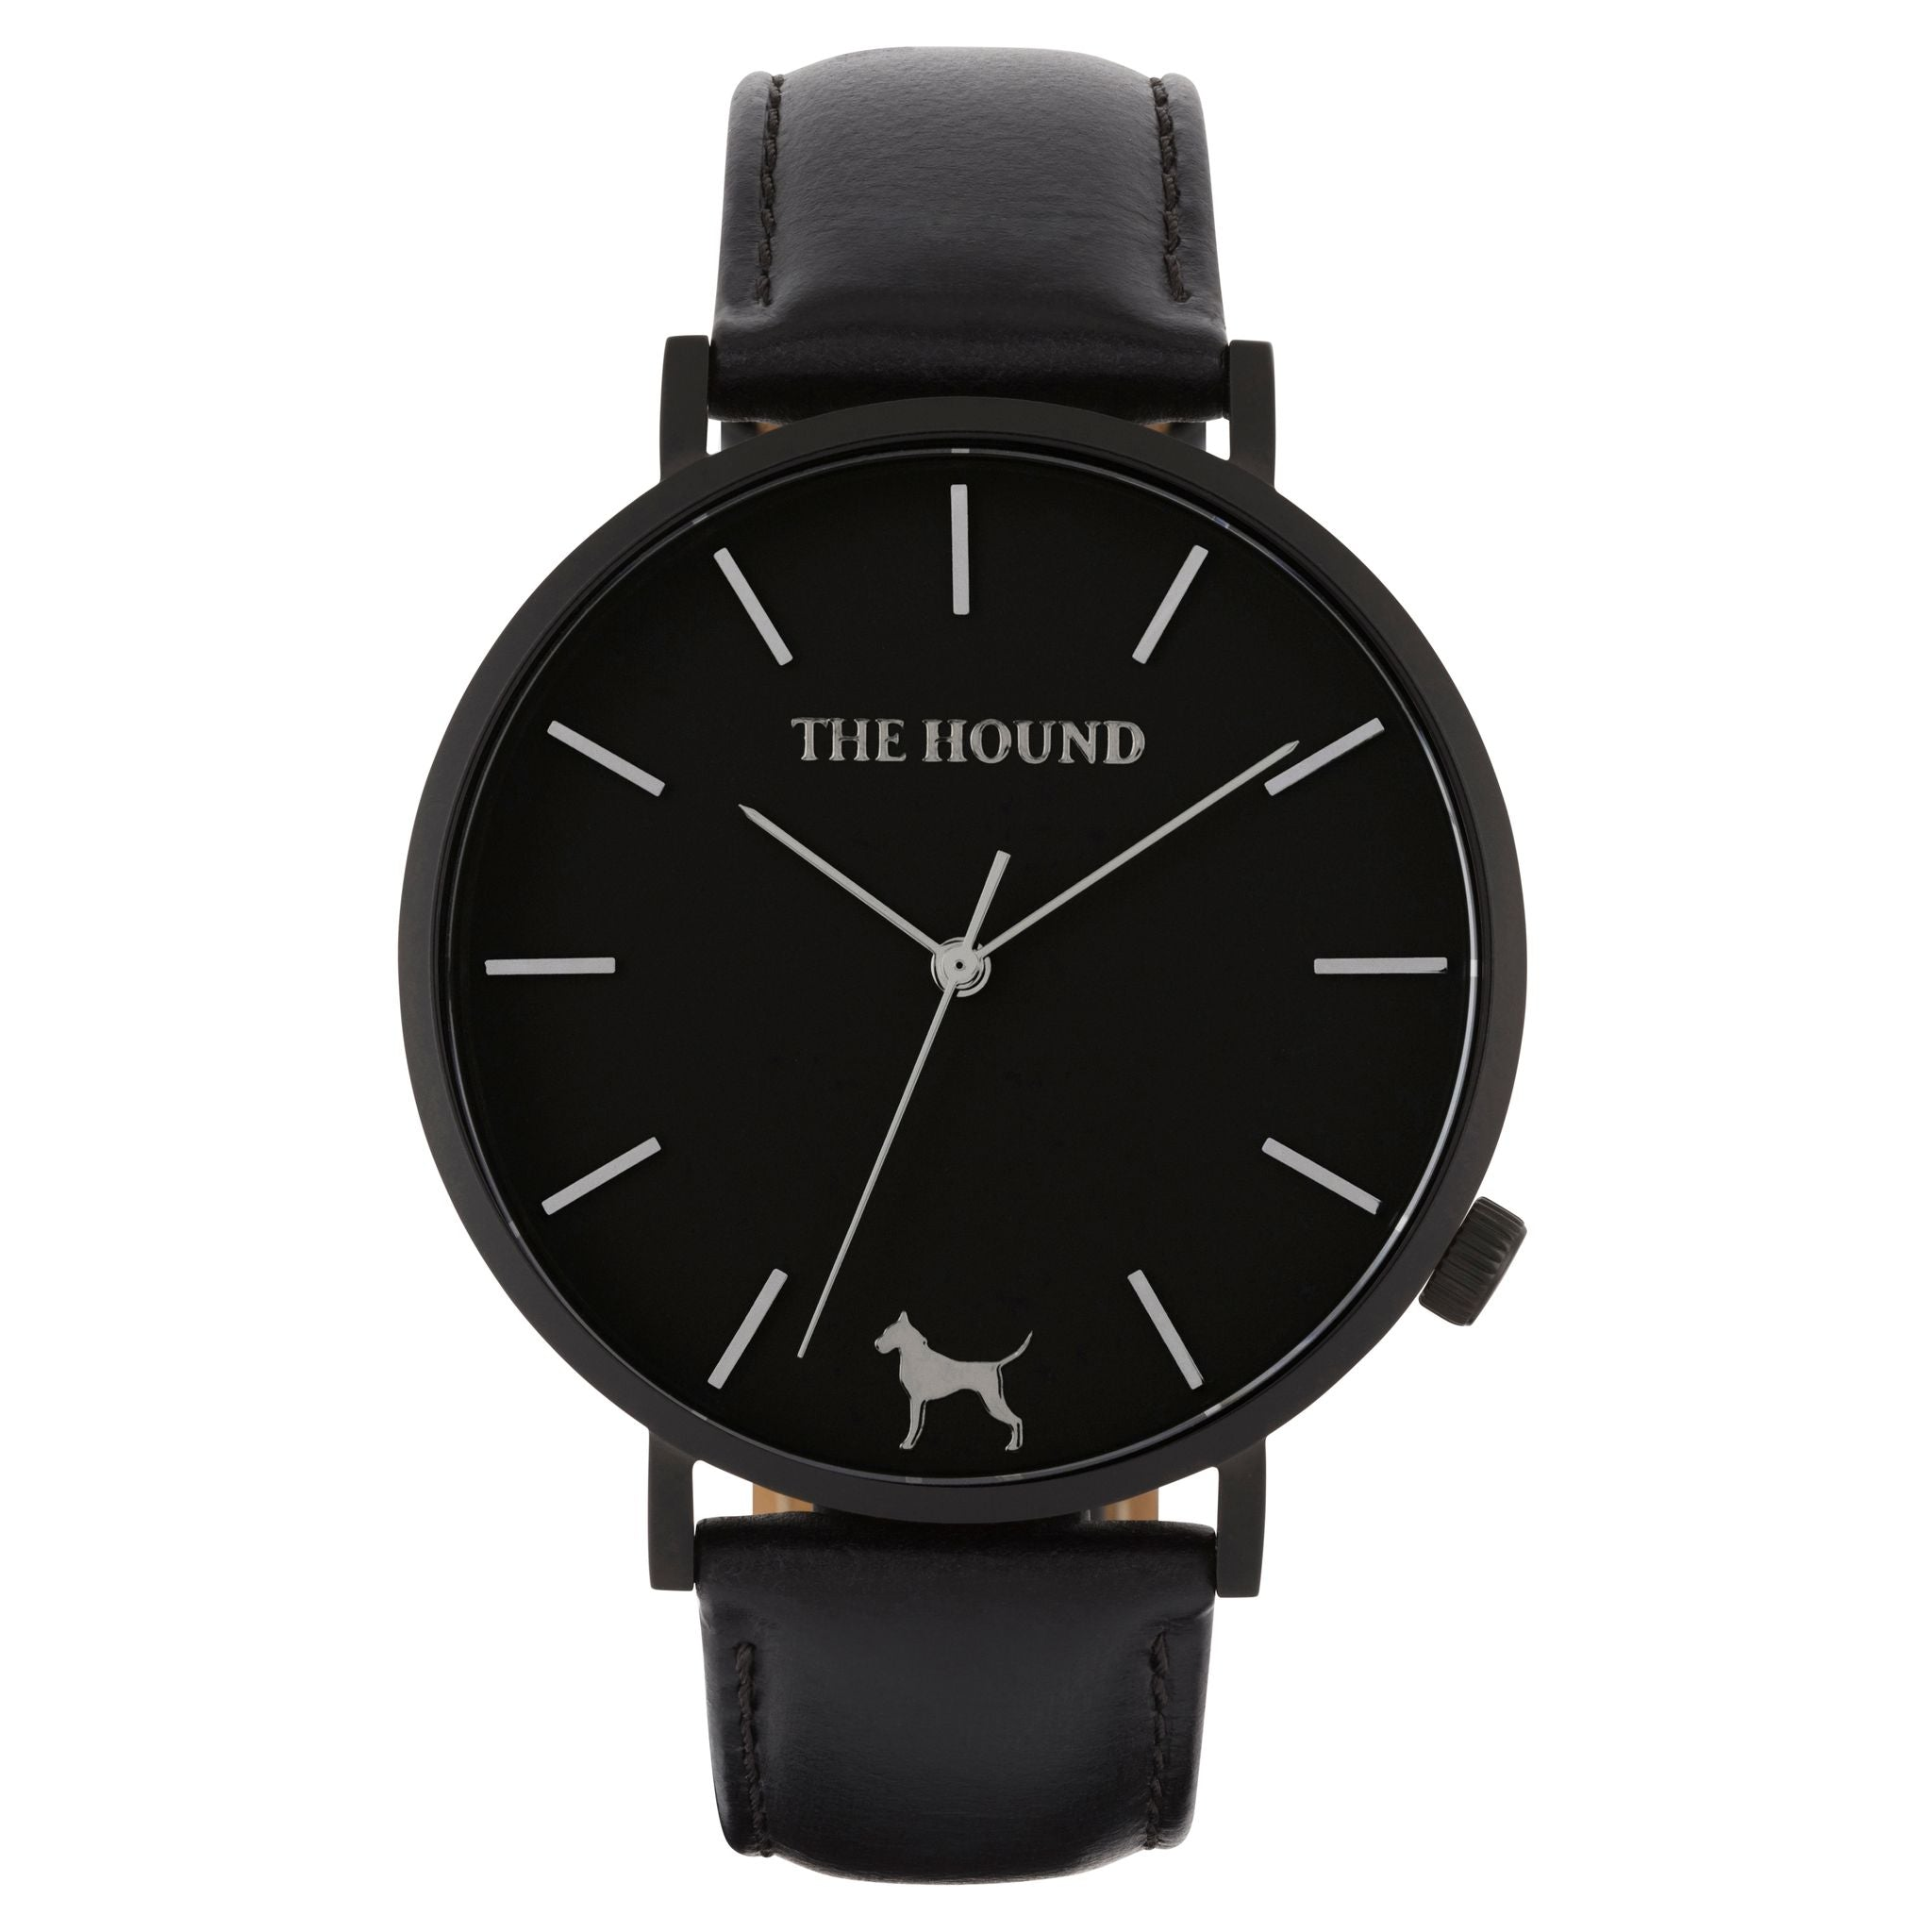 Extra Watch - Matte Black & Black Leather